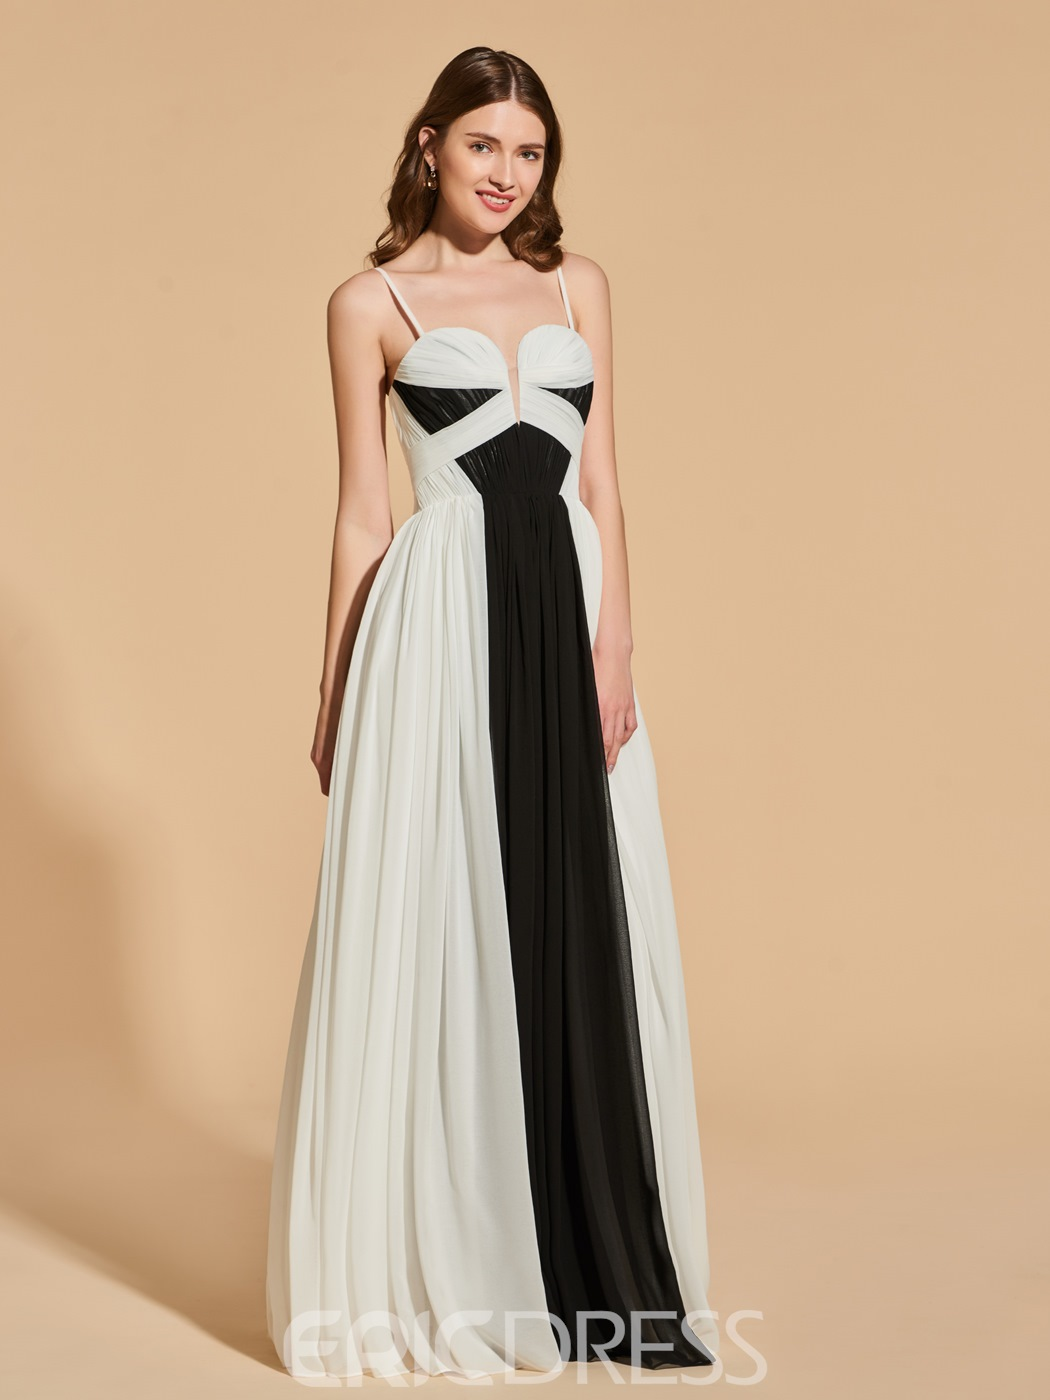 Ericdress A Line Spaghetti Straps Black And White Long Prom Dress